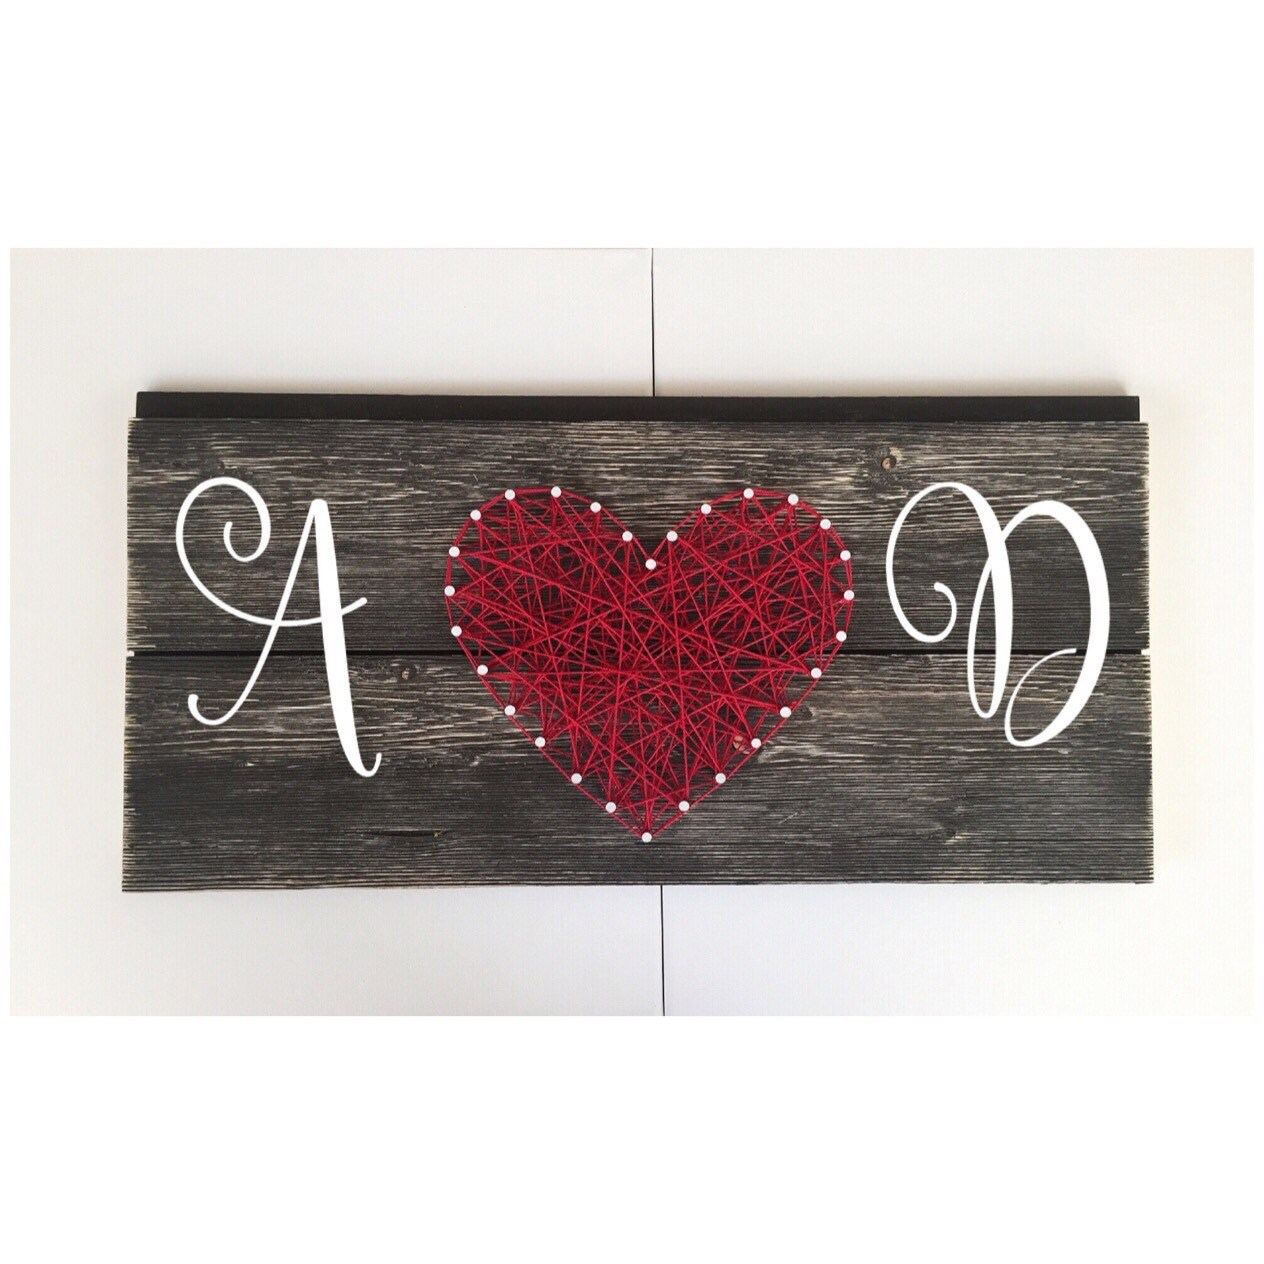 Couples Sign - Monogram Sign - String Art Heart - Wedding Sign - Anniversary Gift - Wall Decor -Wood Sign  sc 1 st  Shop Austla & Couples Sign - Monogram Sign - String Art Heart - Wedding Sign ...